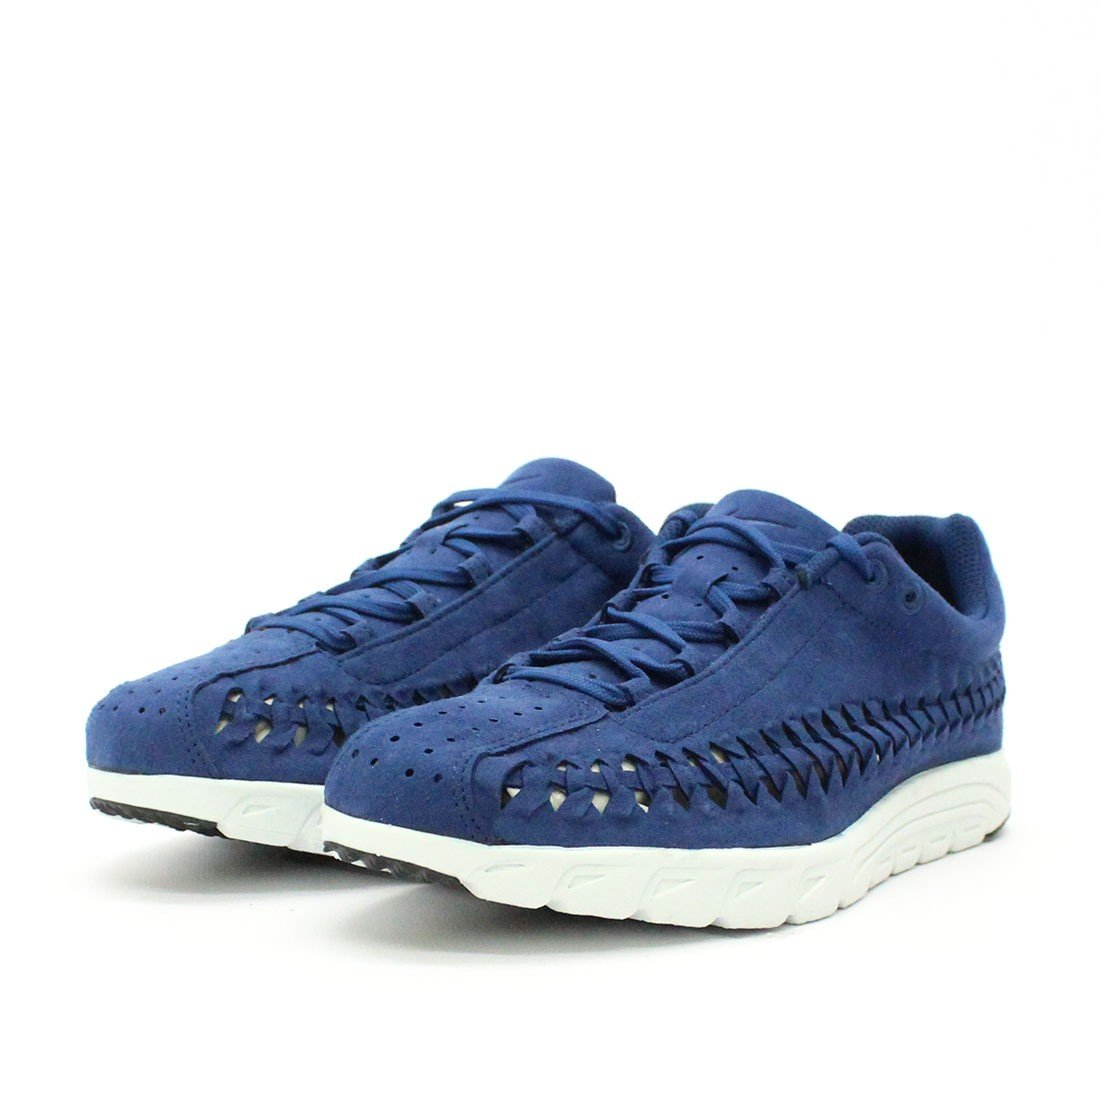 NIKE Men's Mayfly Woven Casual Shoe B01IOGFBX2 9.5 Black-off D(M) US|Coastal Blue / Black-off 9.5 White 42474f